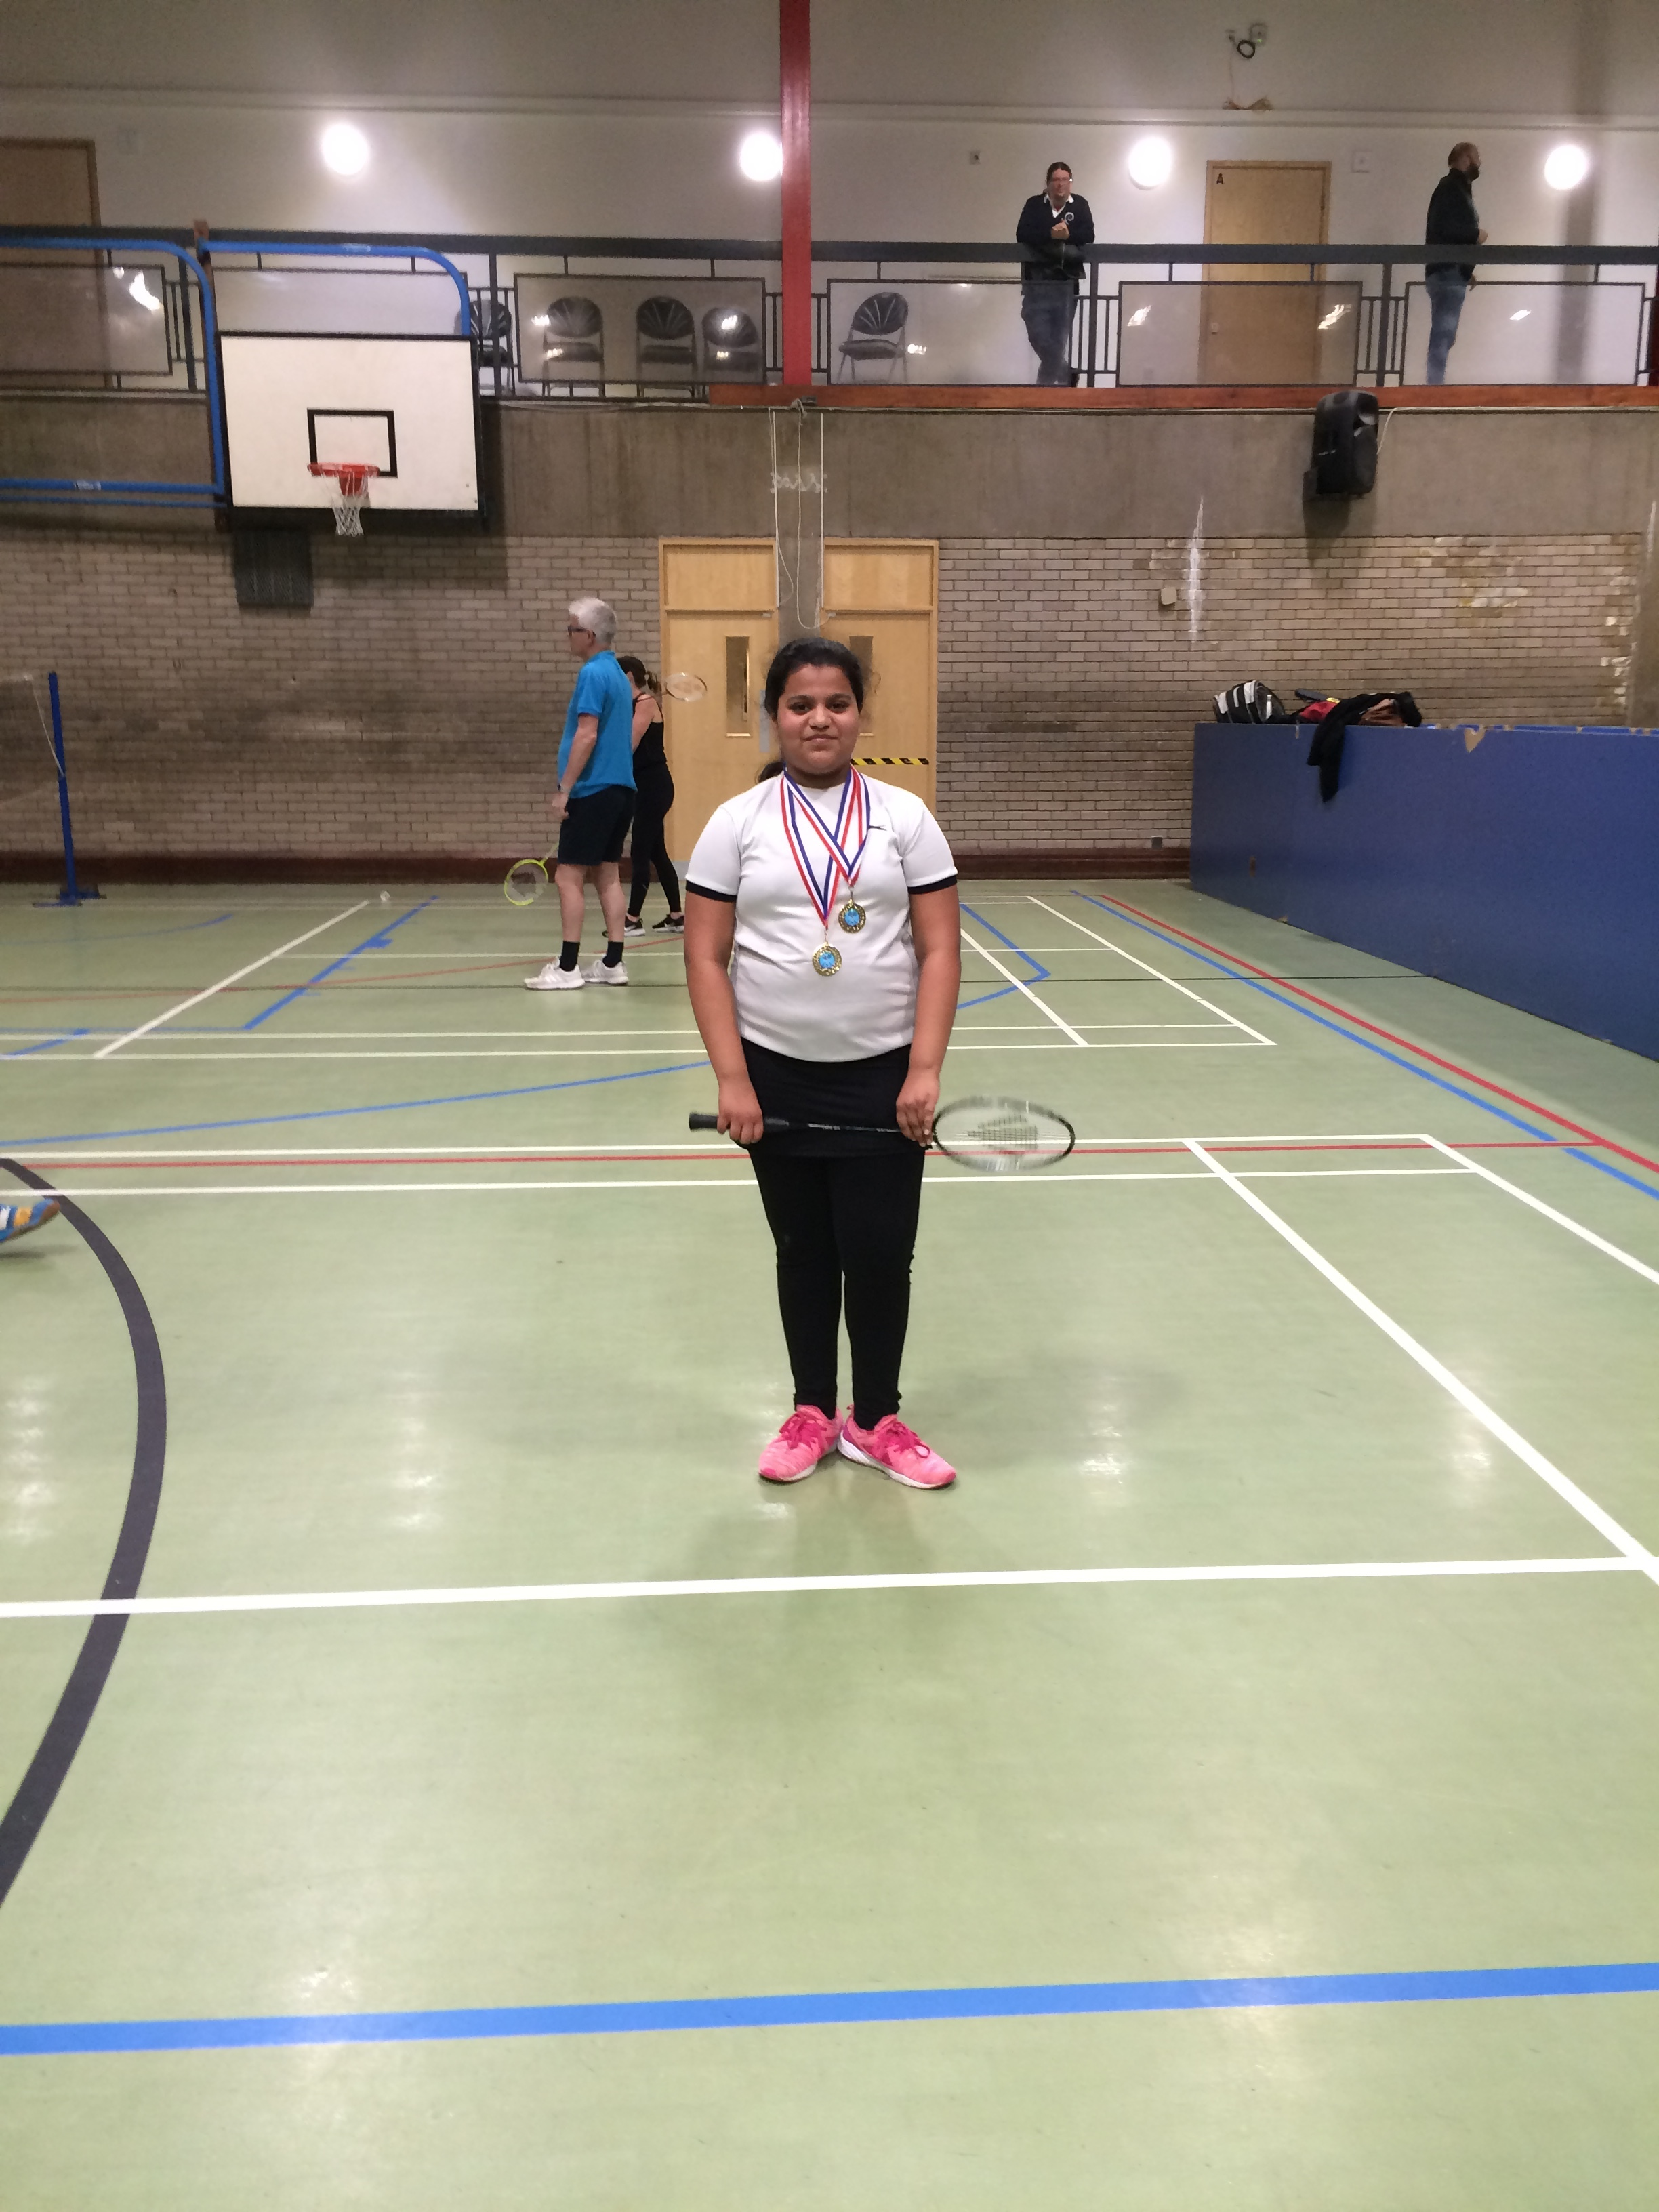 U11/U13 girls singles winner: Kasuma Anchi